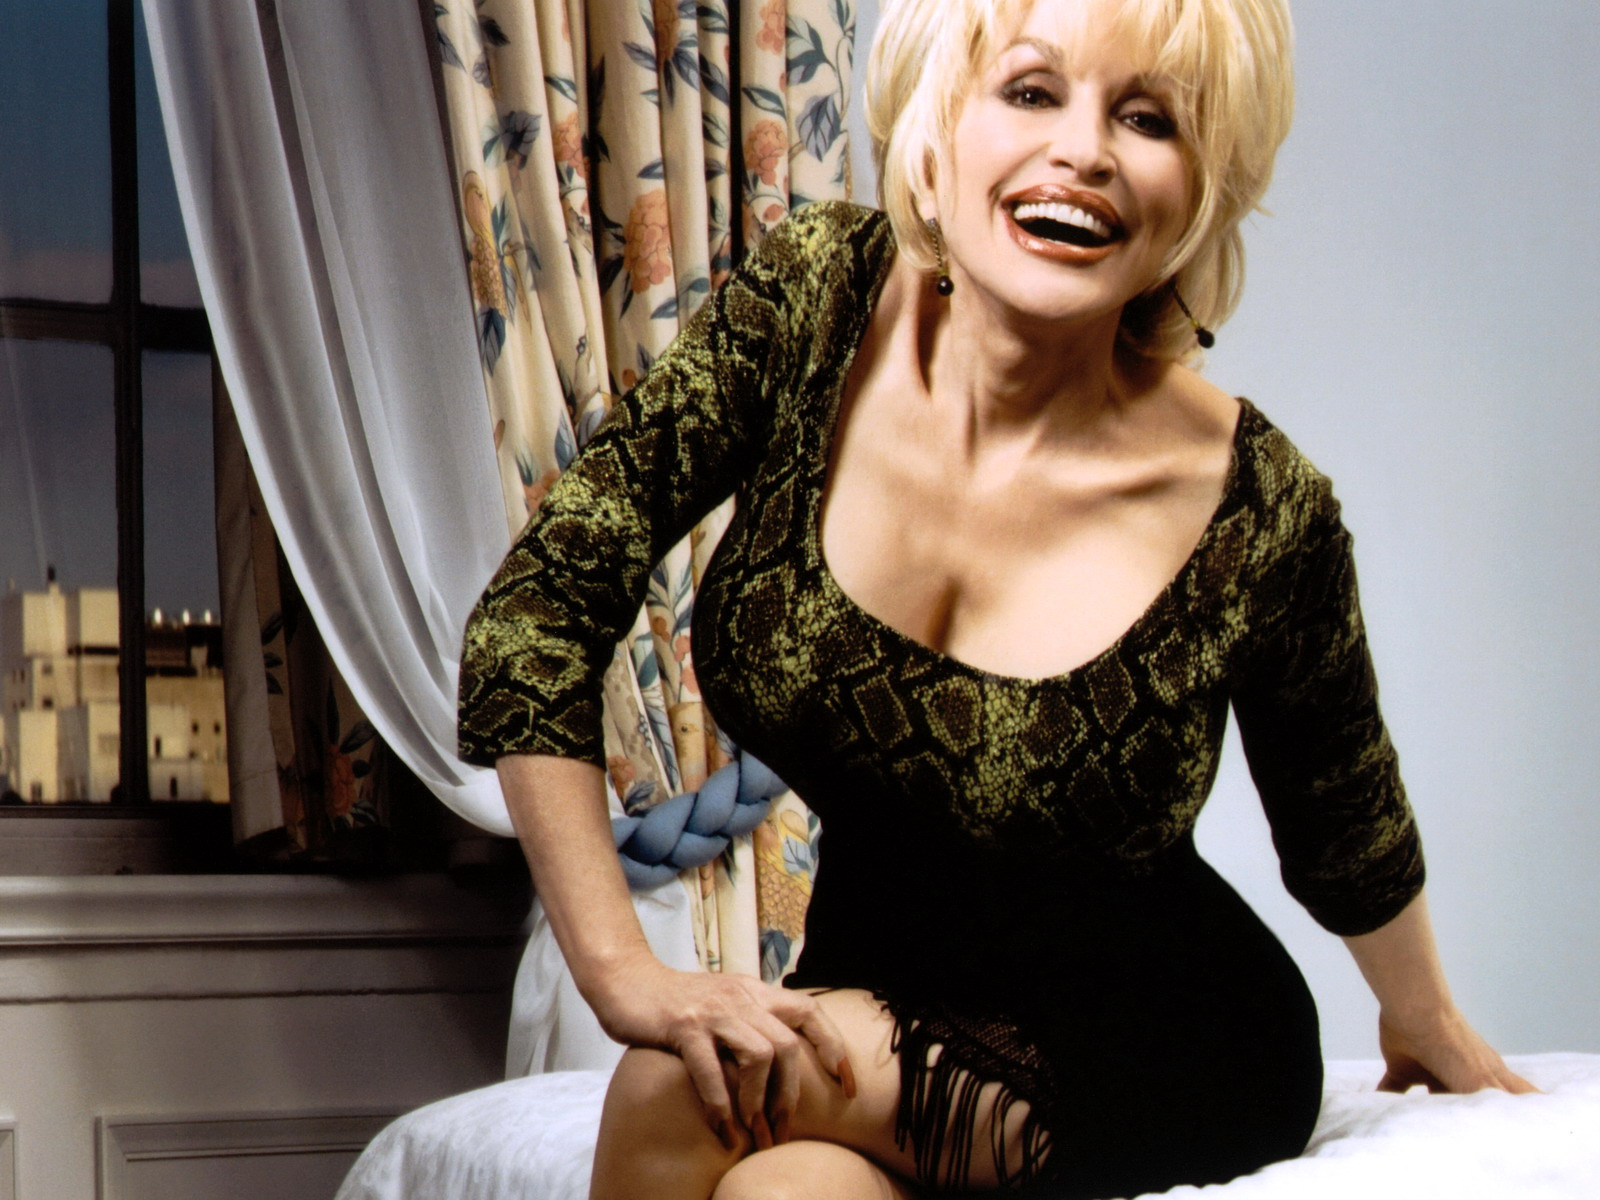 DOLLY PARTON What Are The Two Most Important Things She Has? | The Real Music Divas